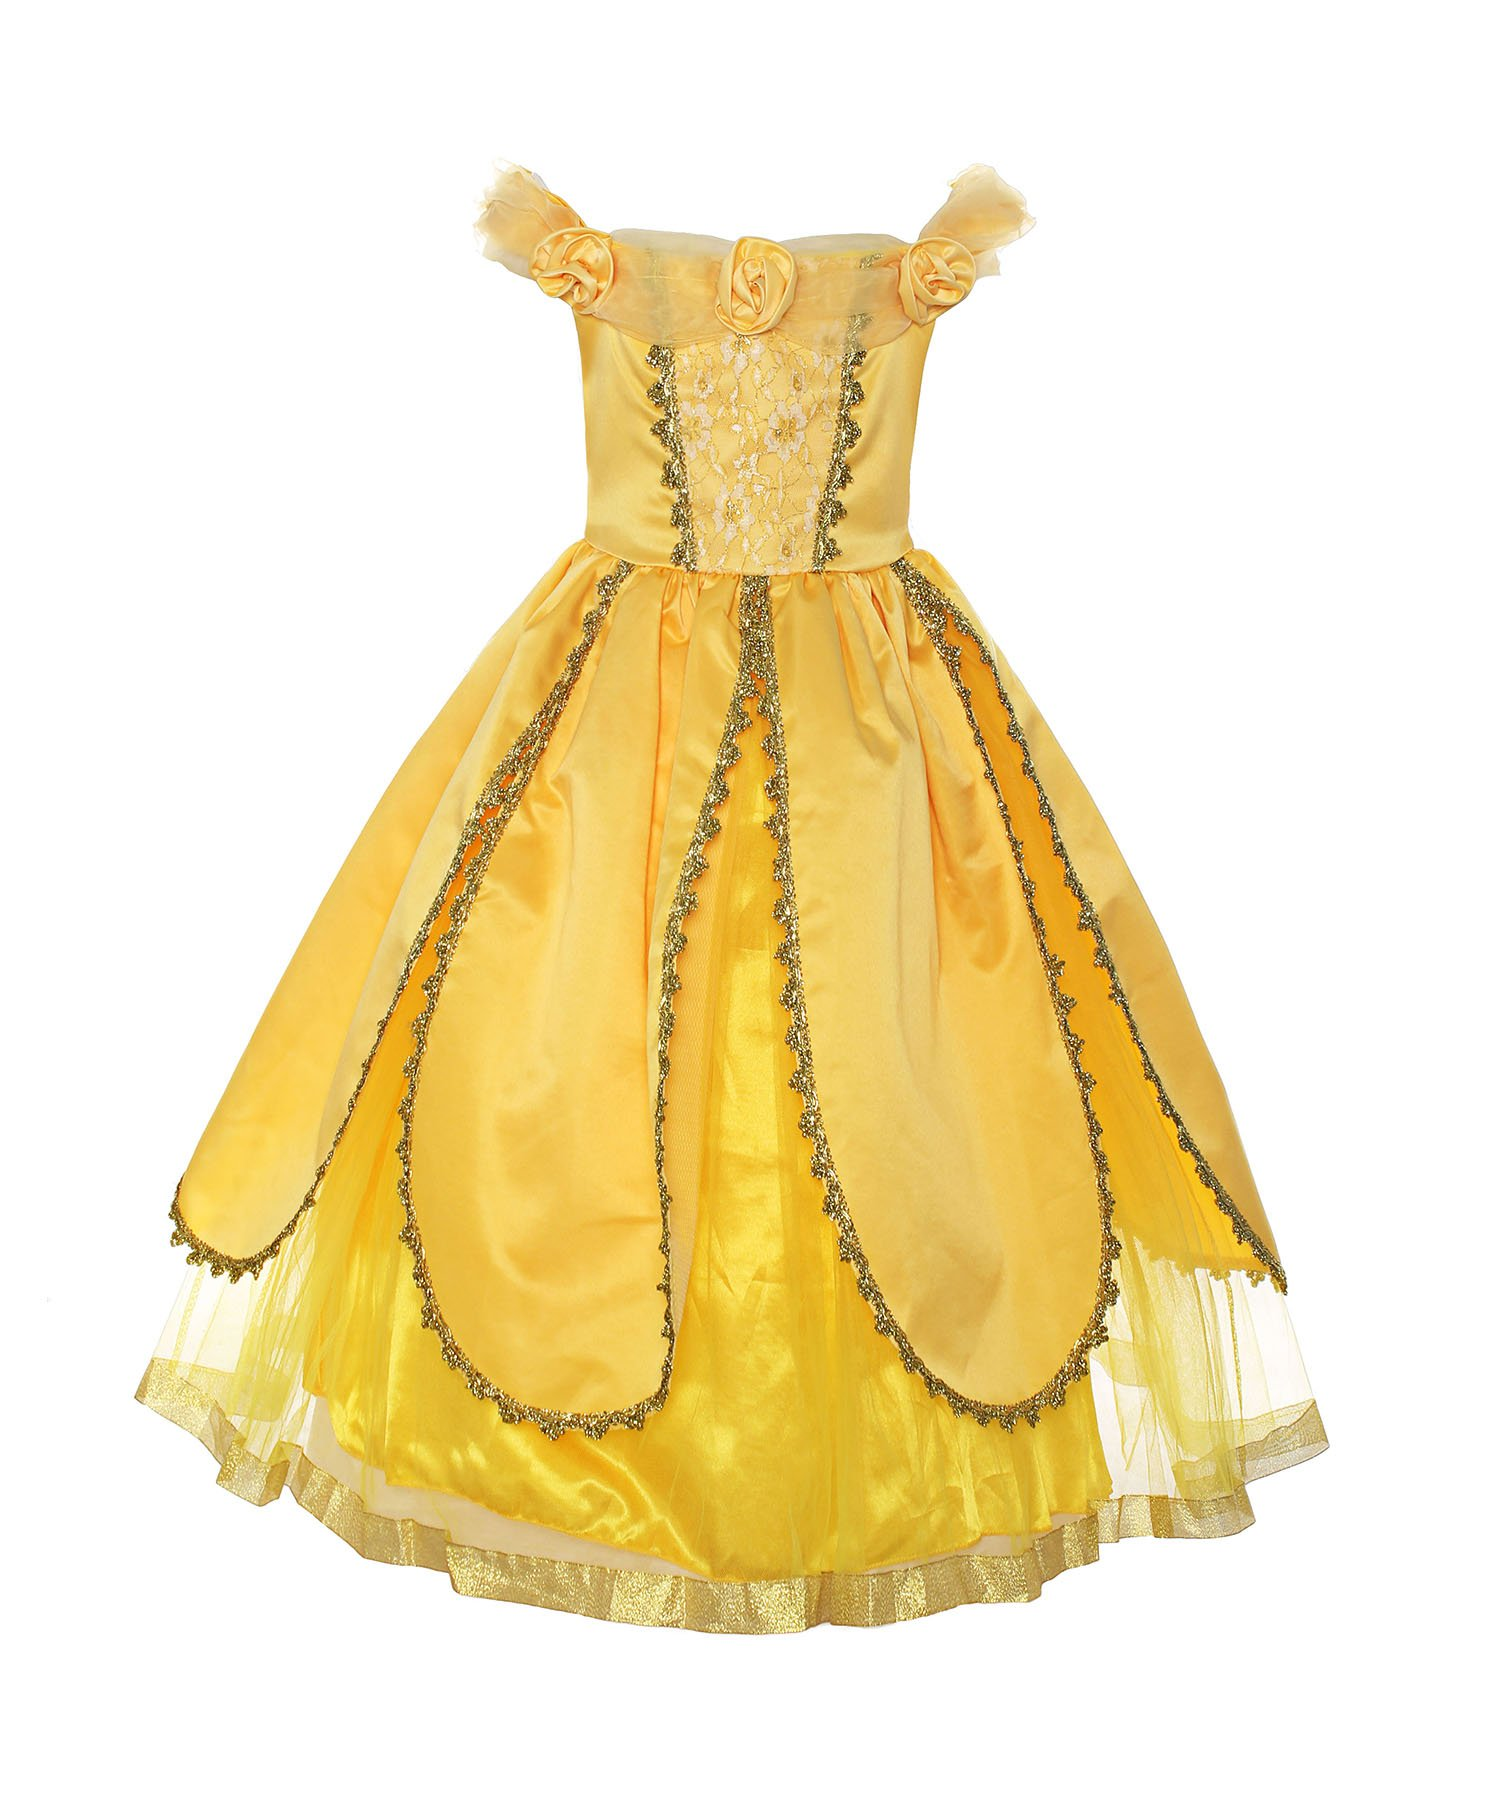 ReliBeauty Girls Princess Belle Costume Belted Dress Up, Yellow, 4